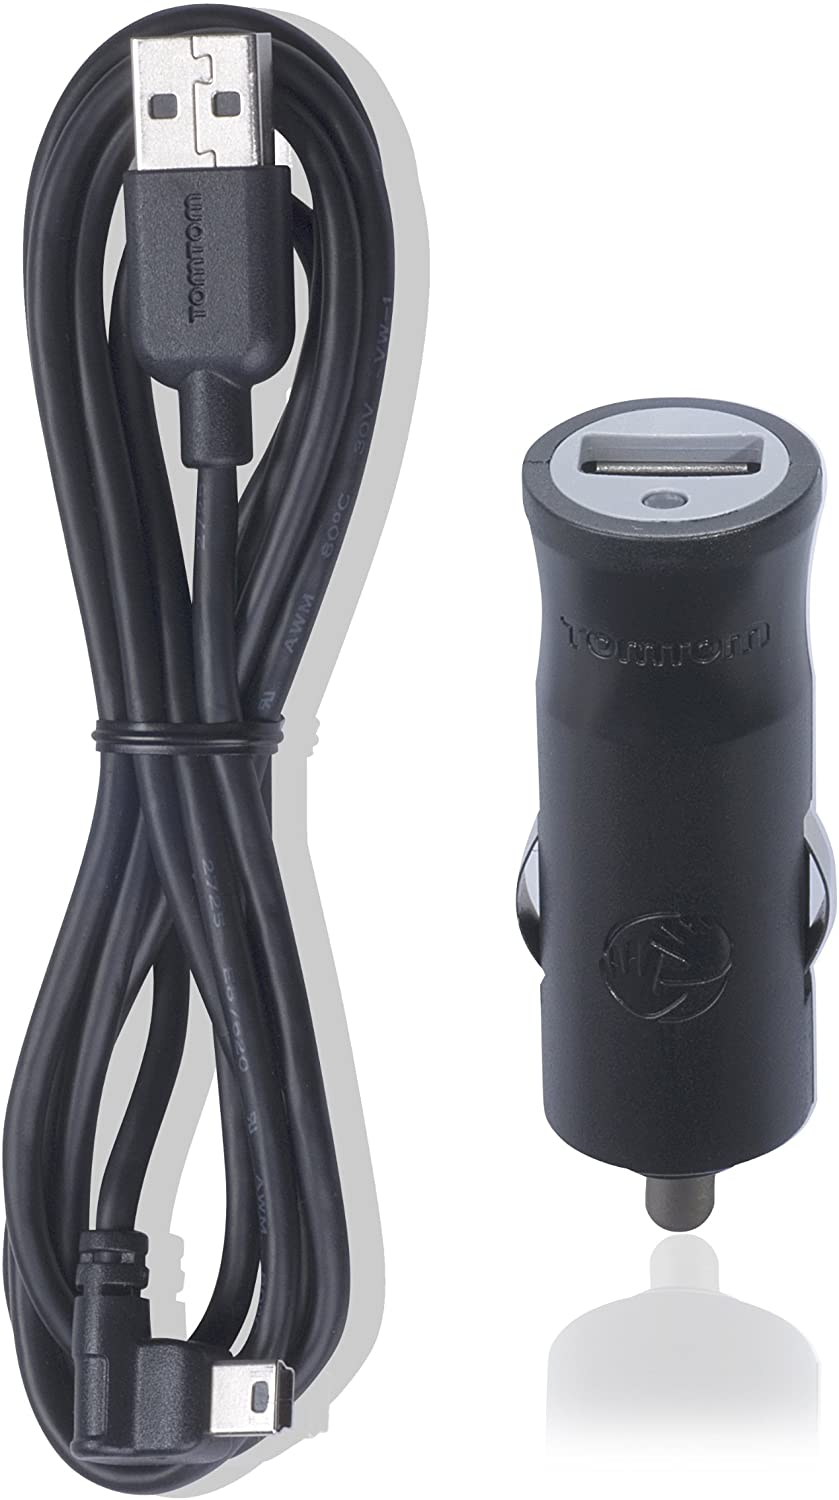 CARICABATTERIE TOM TOM USB CHARGER